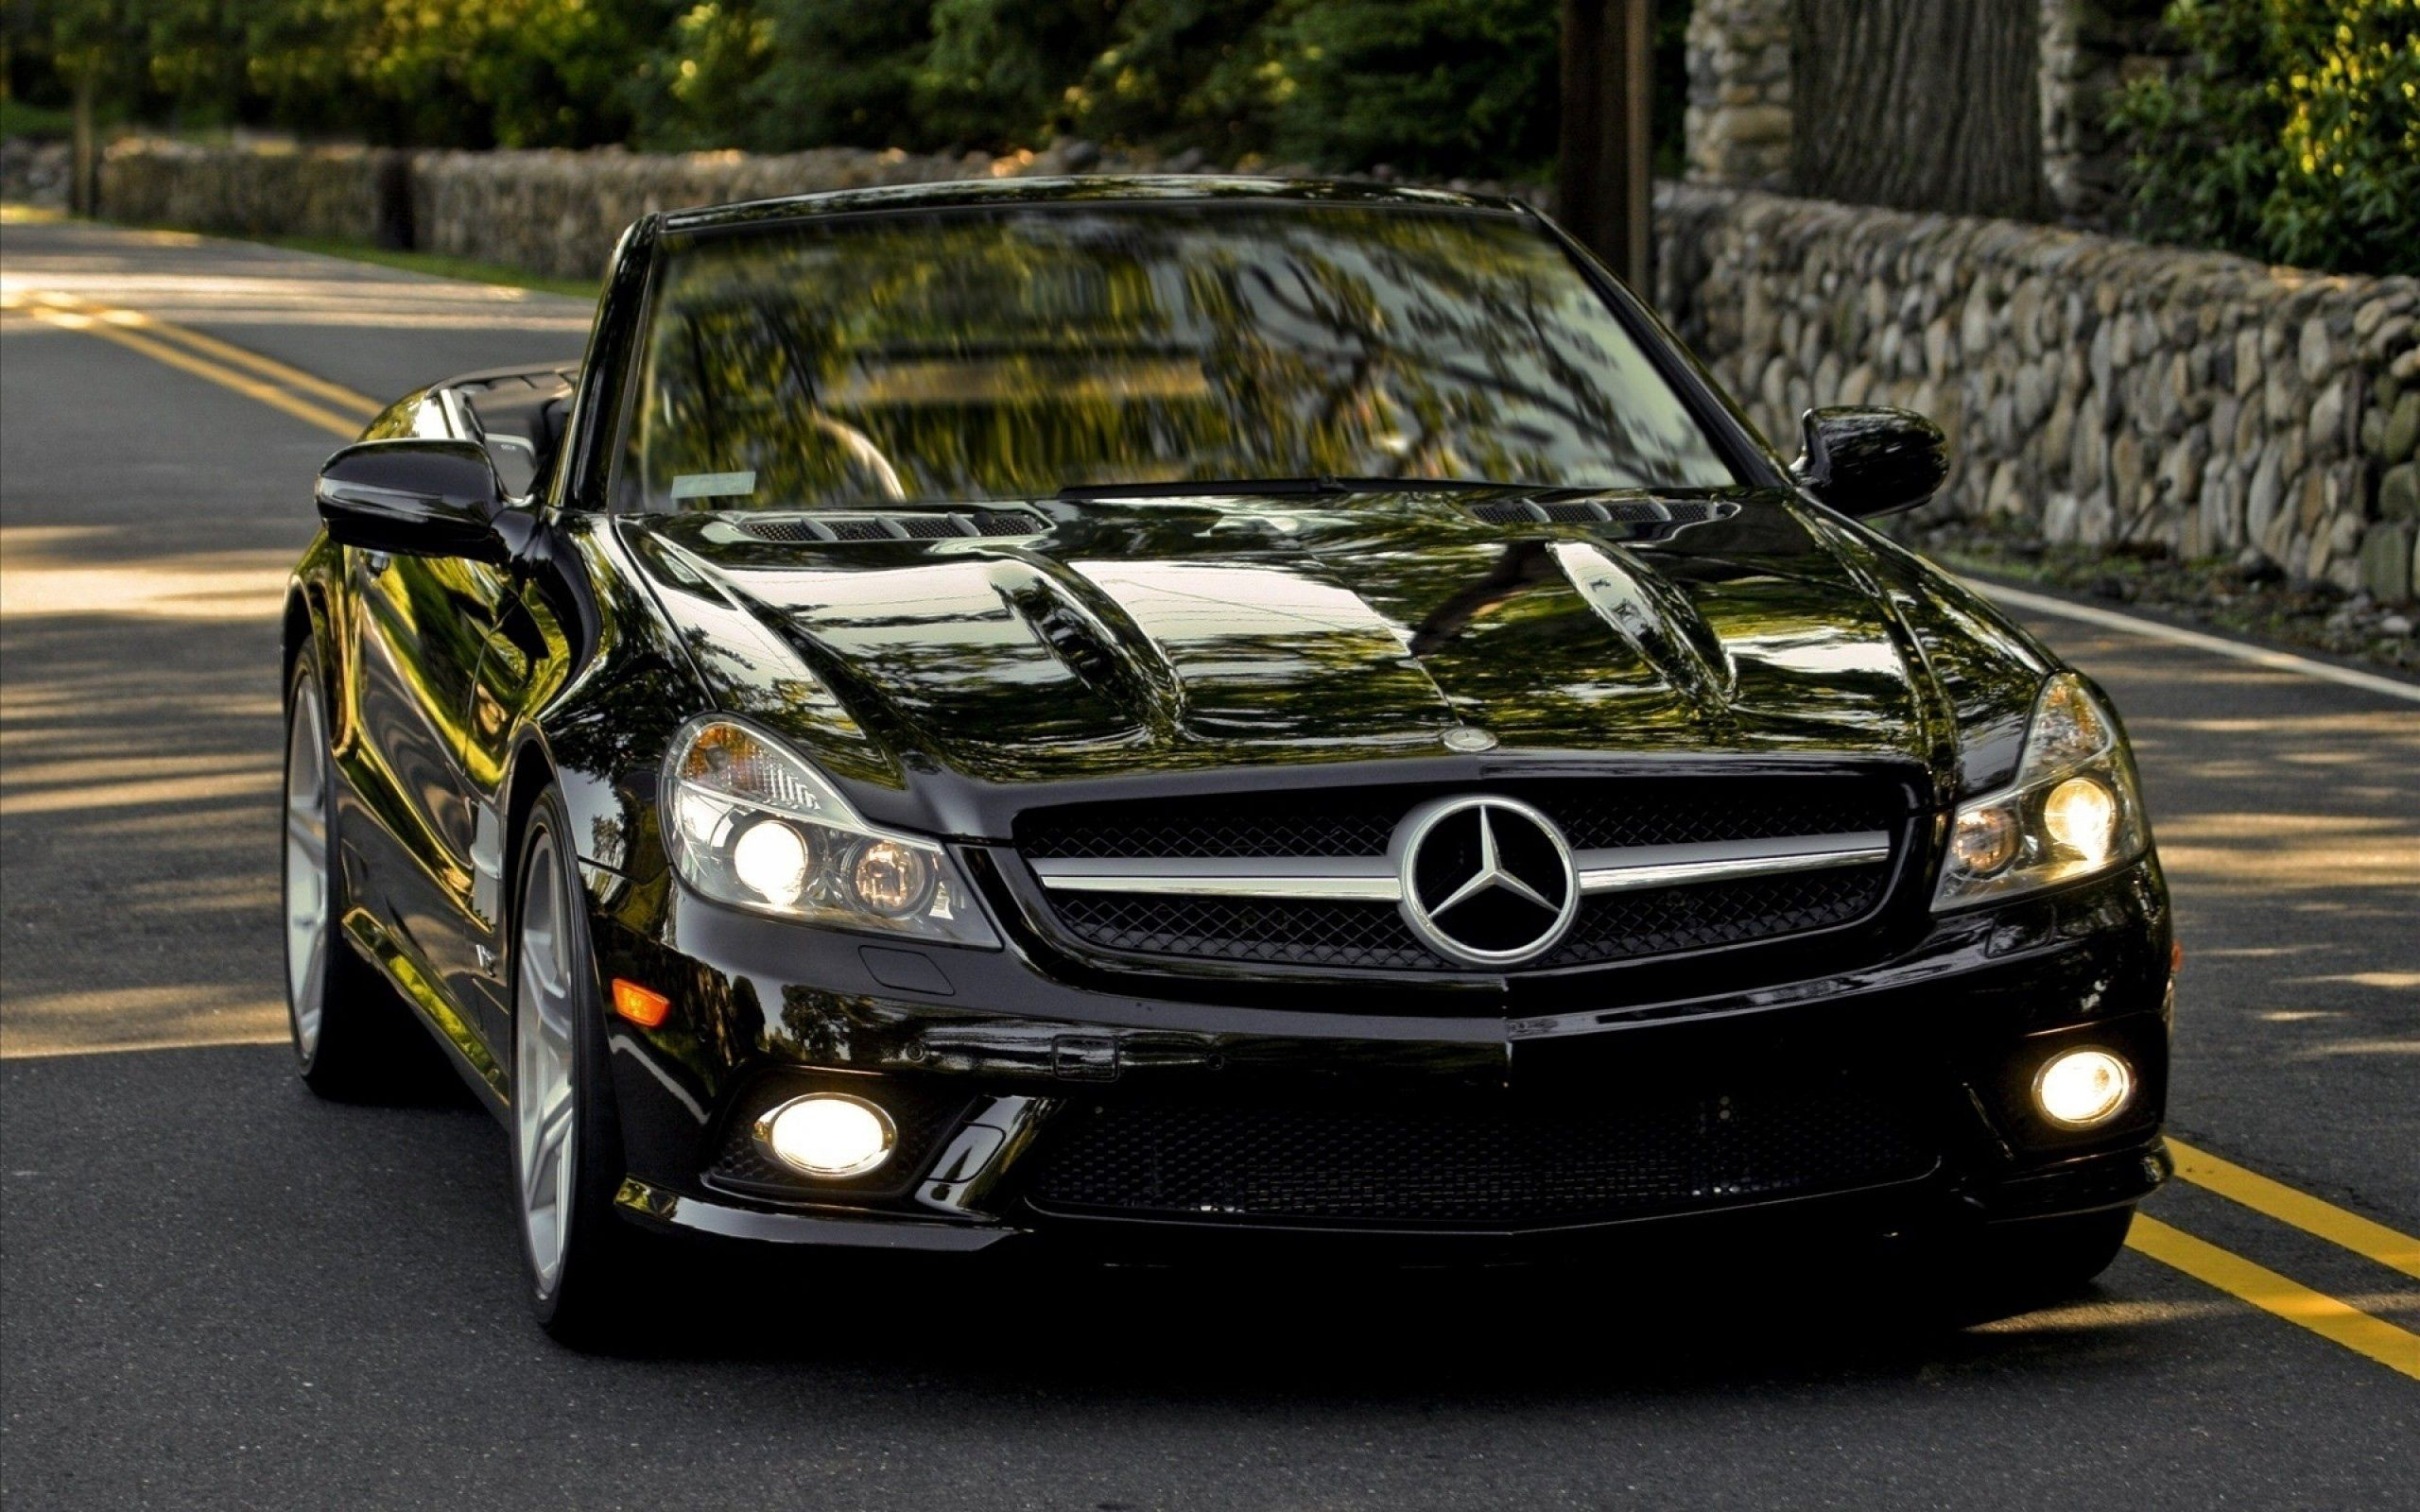 114051 download wallpaper Cars, Mercedes-Benz, Auto, Road screensavers and pictures for free